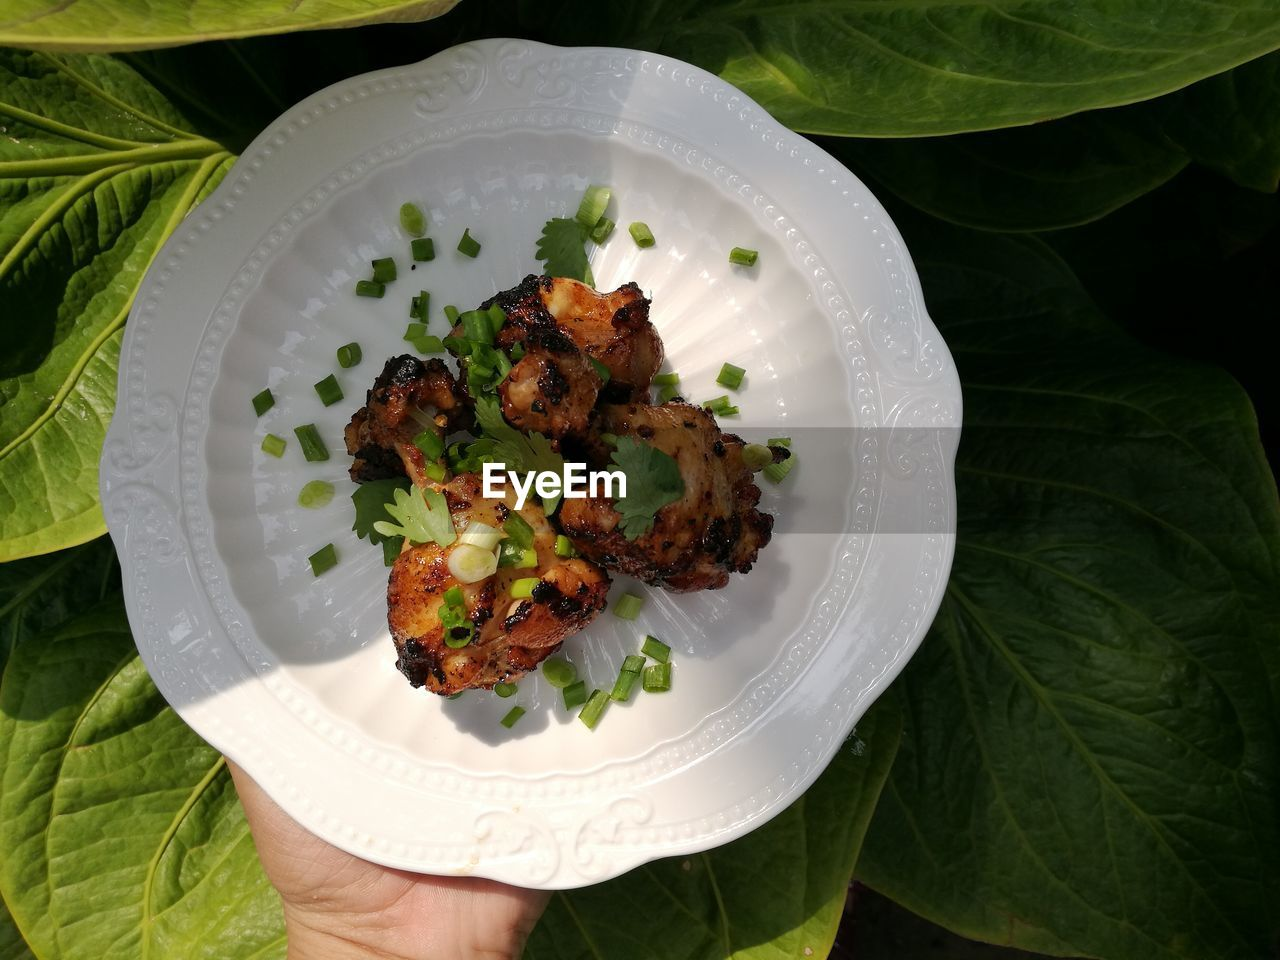 Directly above shot of hand holding food in plate